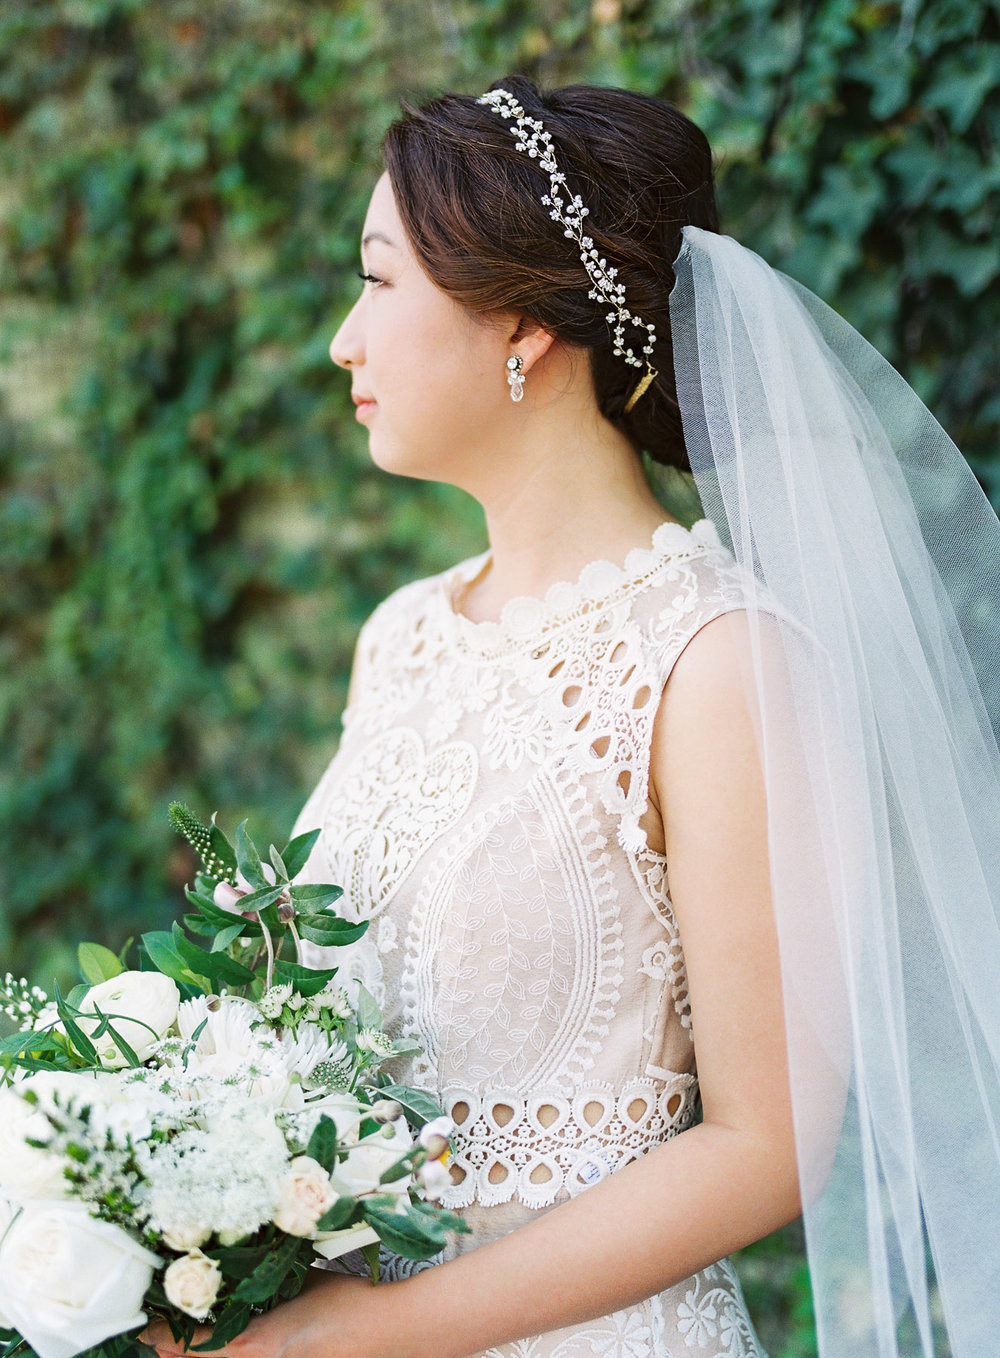 BHLDN Wedding Gown and Hairpiece